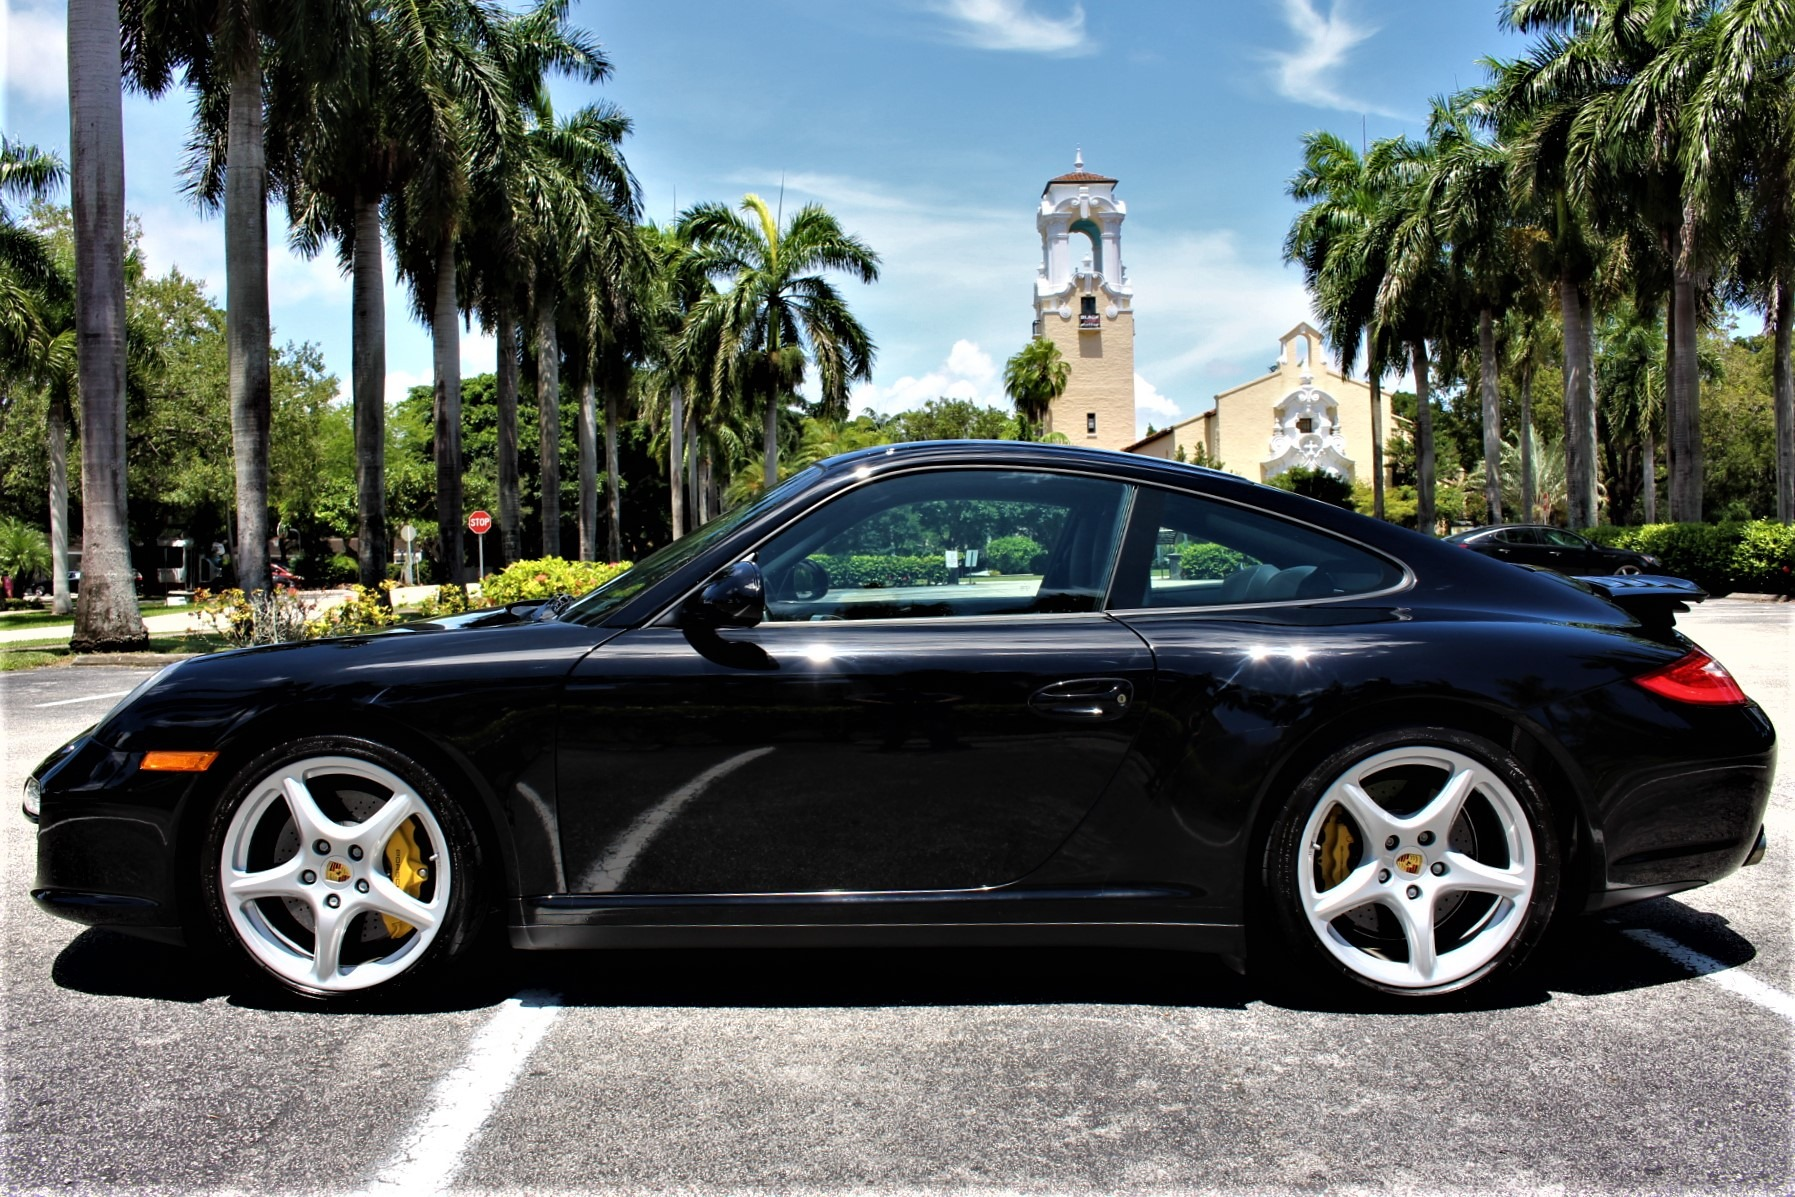 Used 2009 Porsche 911 Carrera 4S for sale Sold at The Gables Sports Cars in Miami FL 33146 4